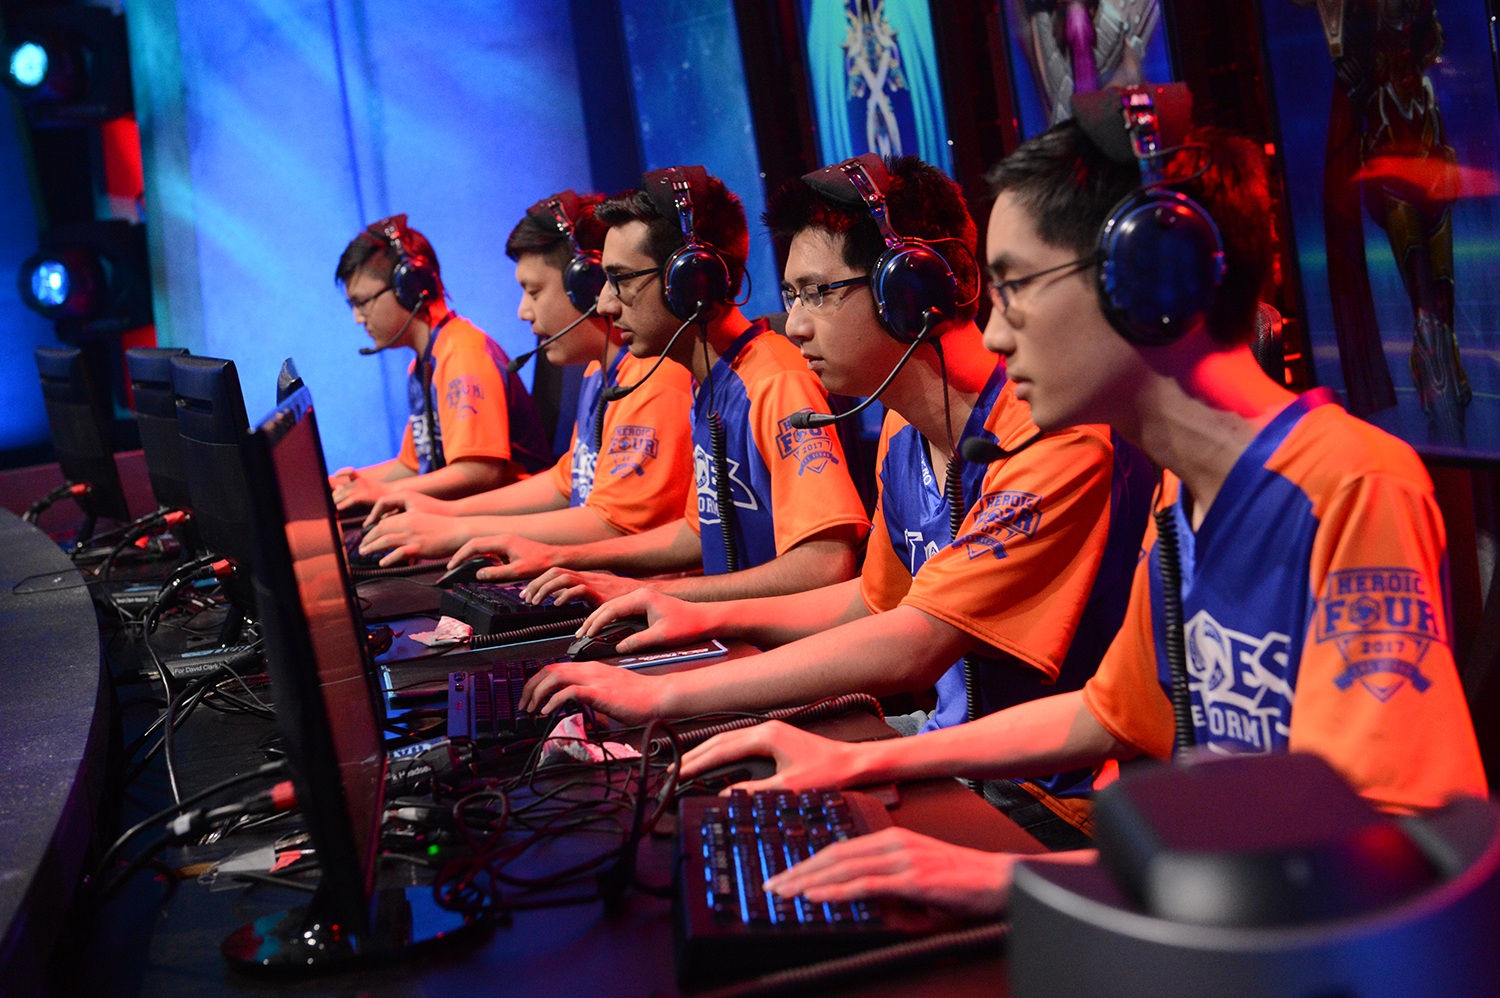 UTA's Heroes of the Dorm competes in the Grand Finale